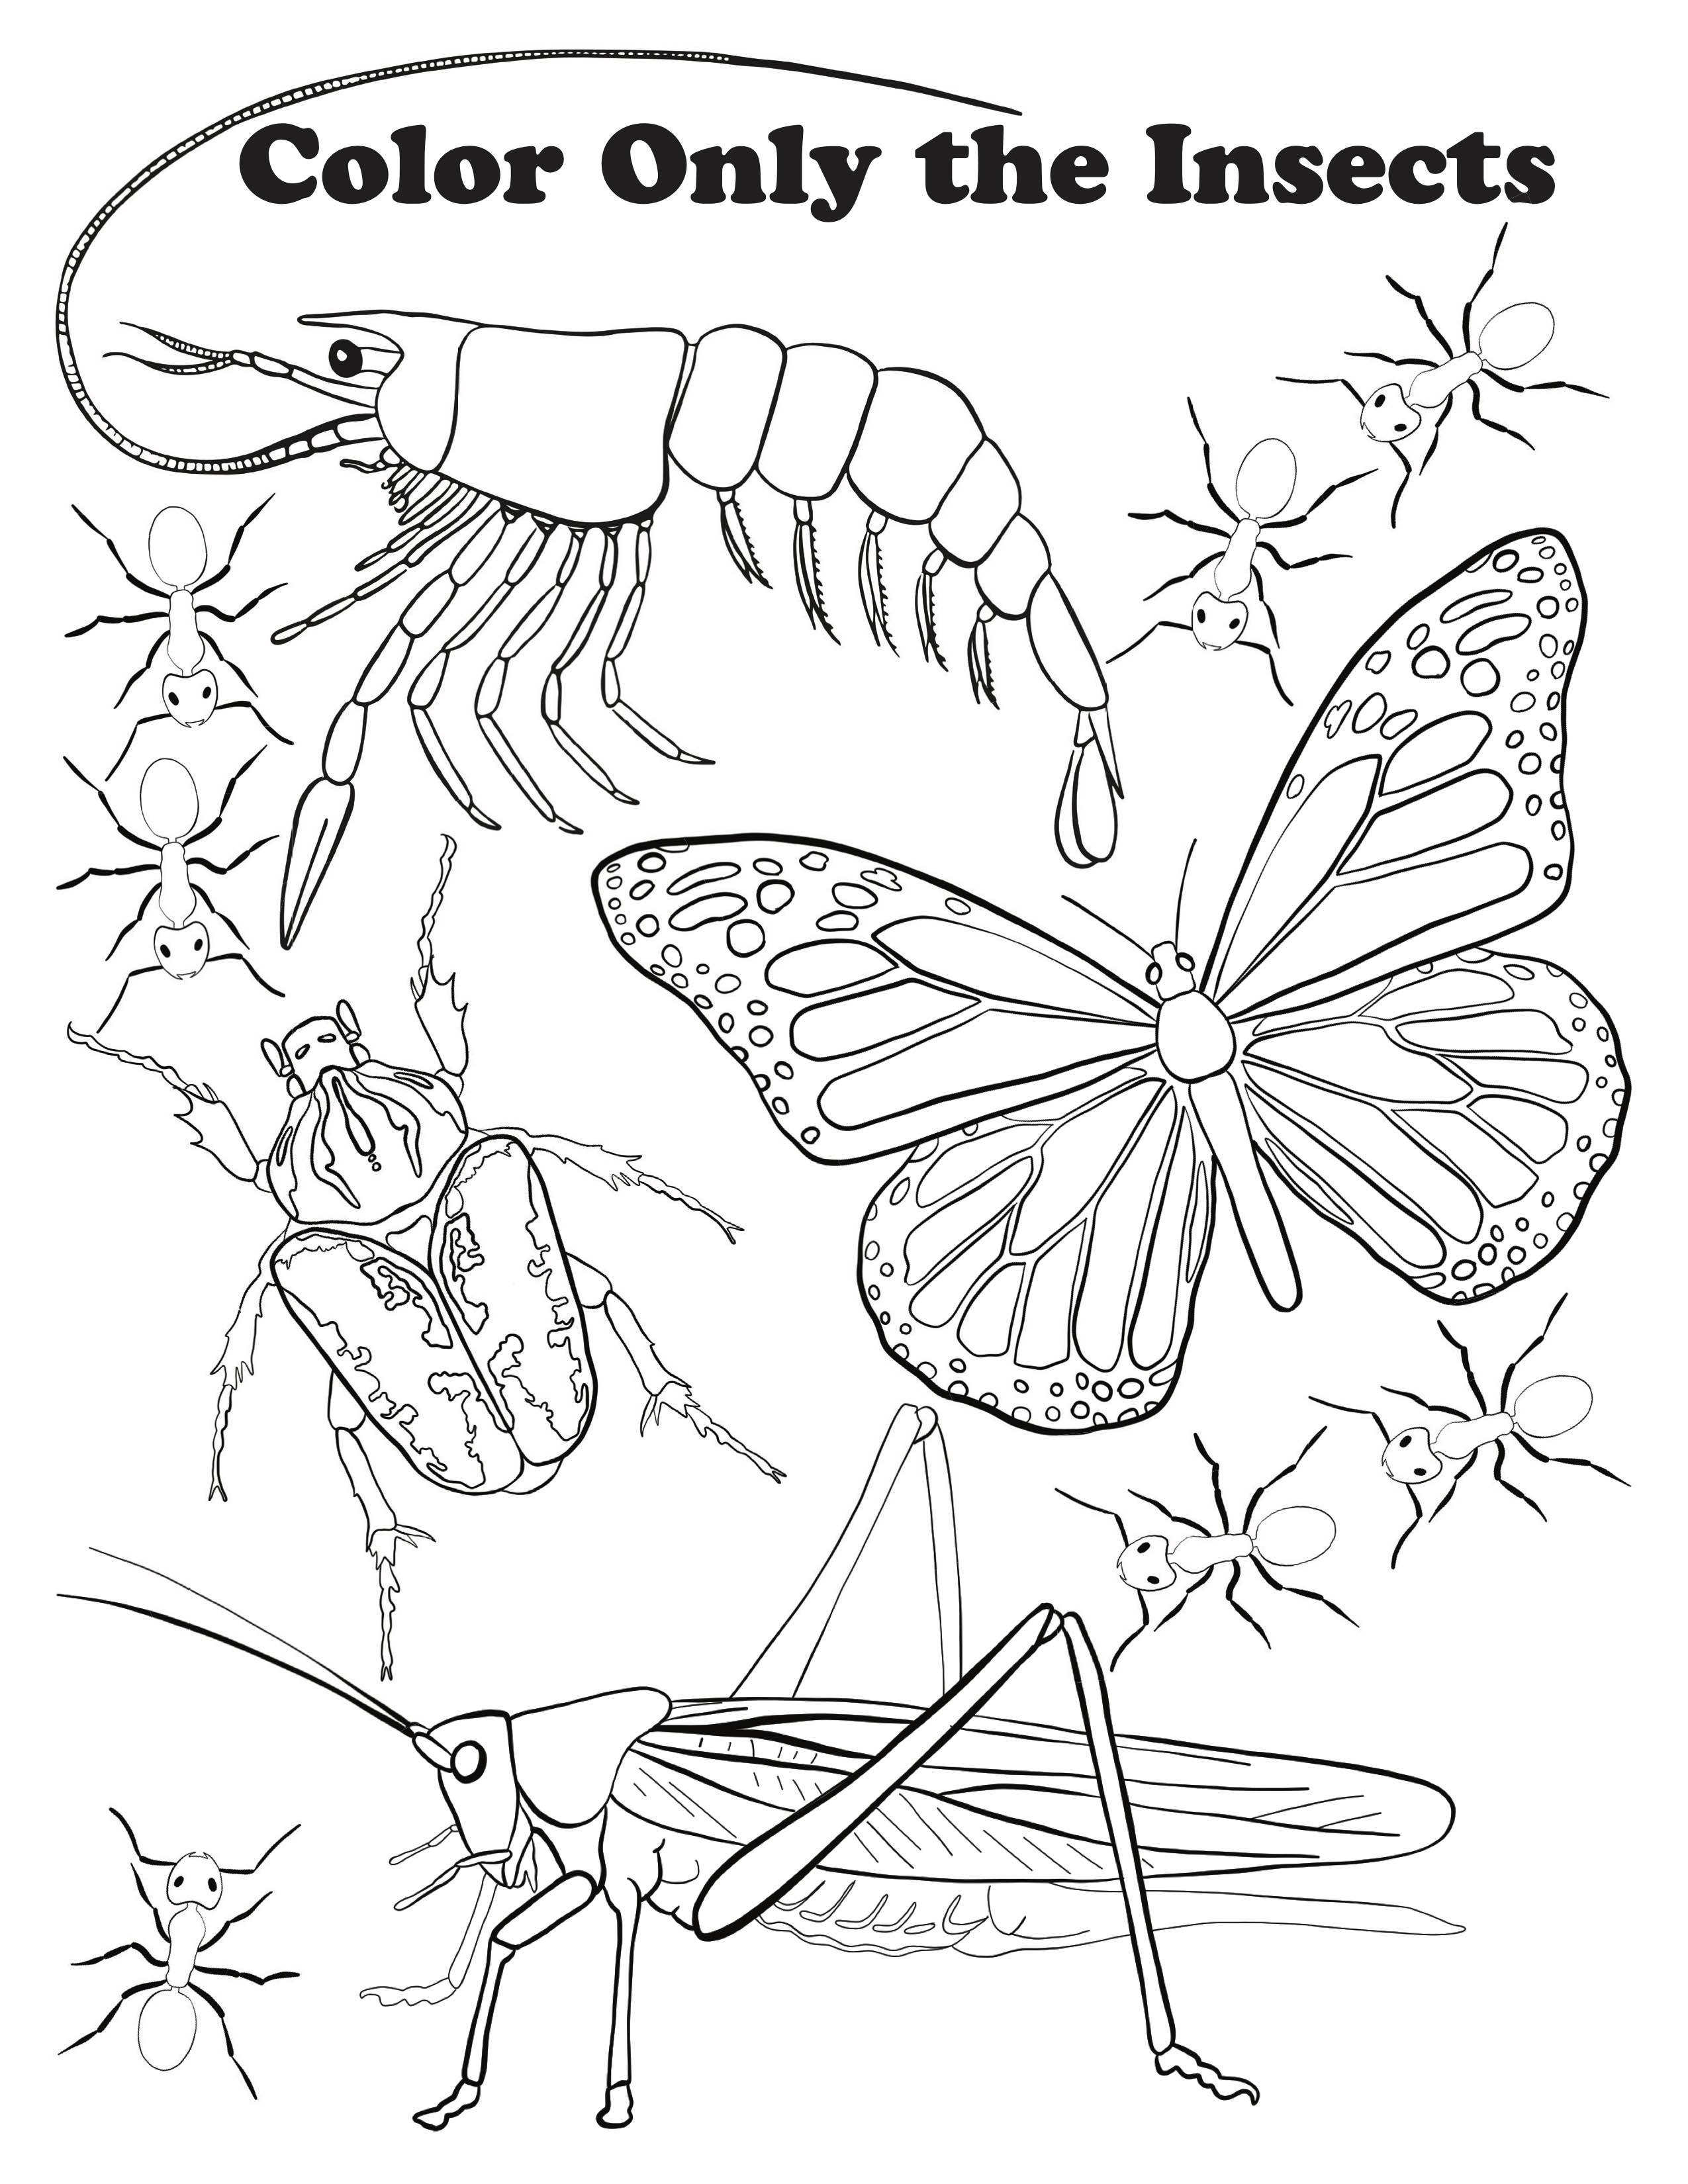 insect coloring page invasive